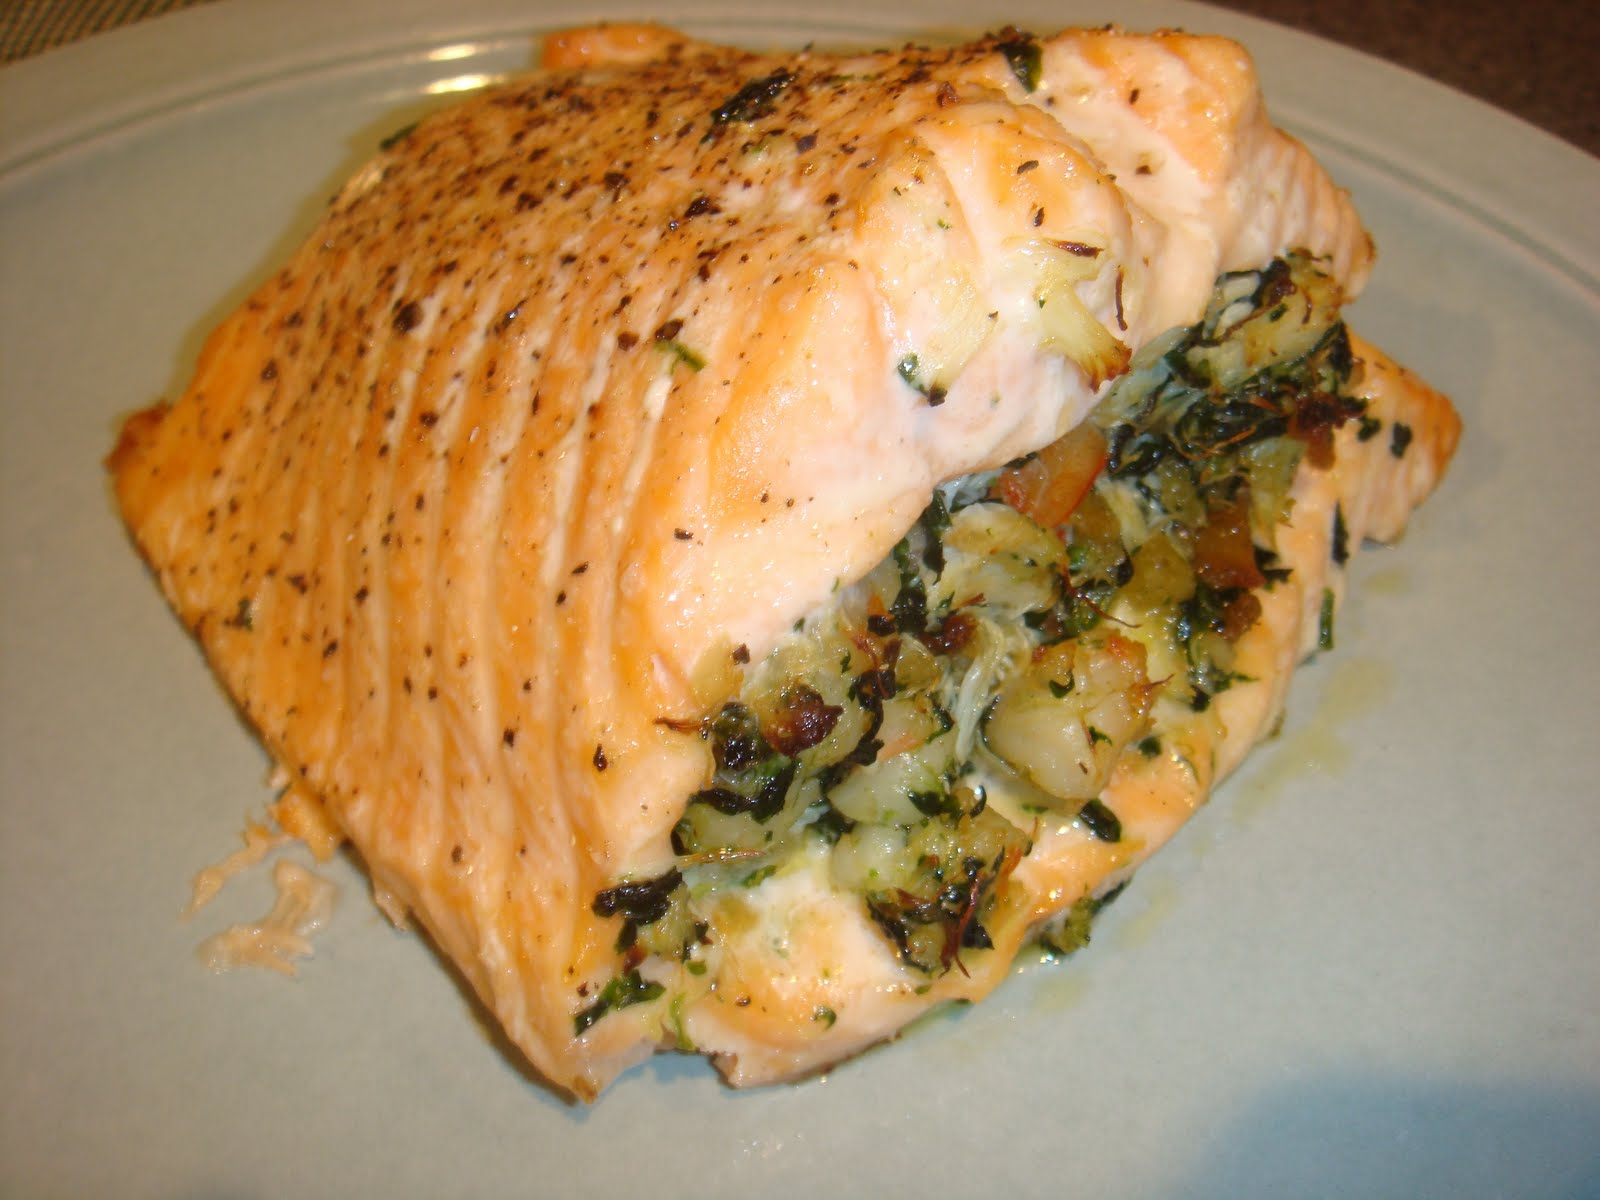 The domestic life seafood stuffed salmon for Stuffed fish with crab meat